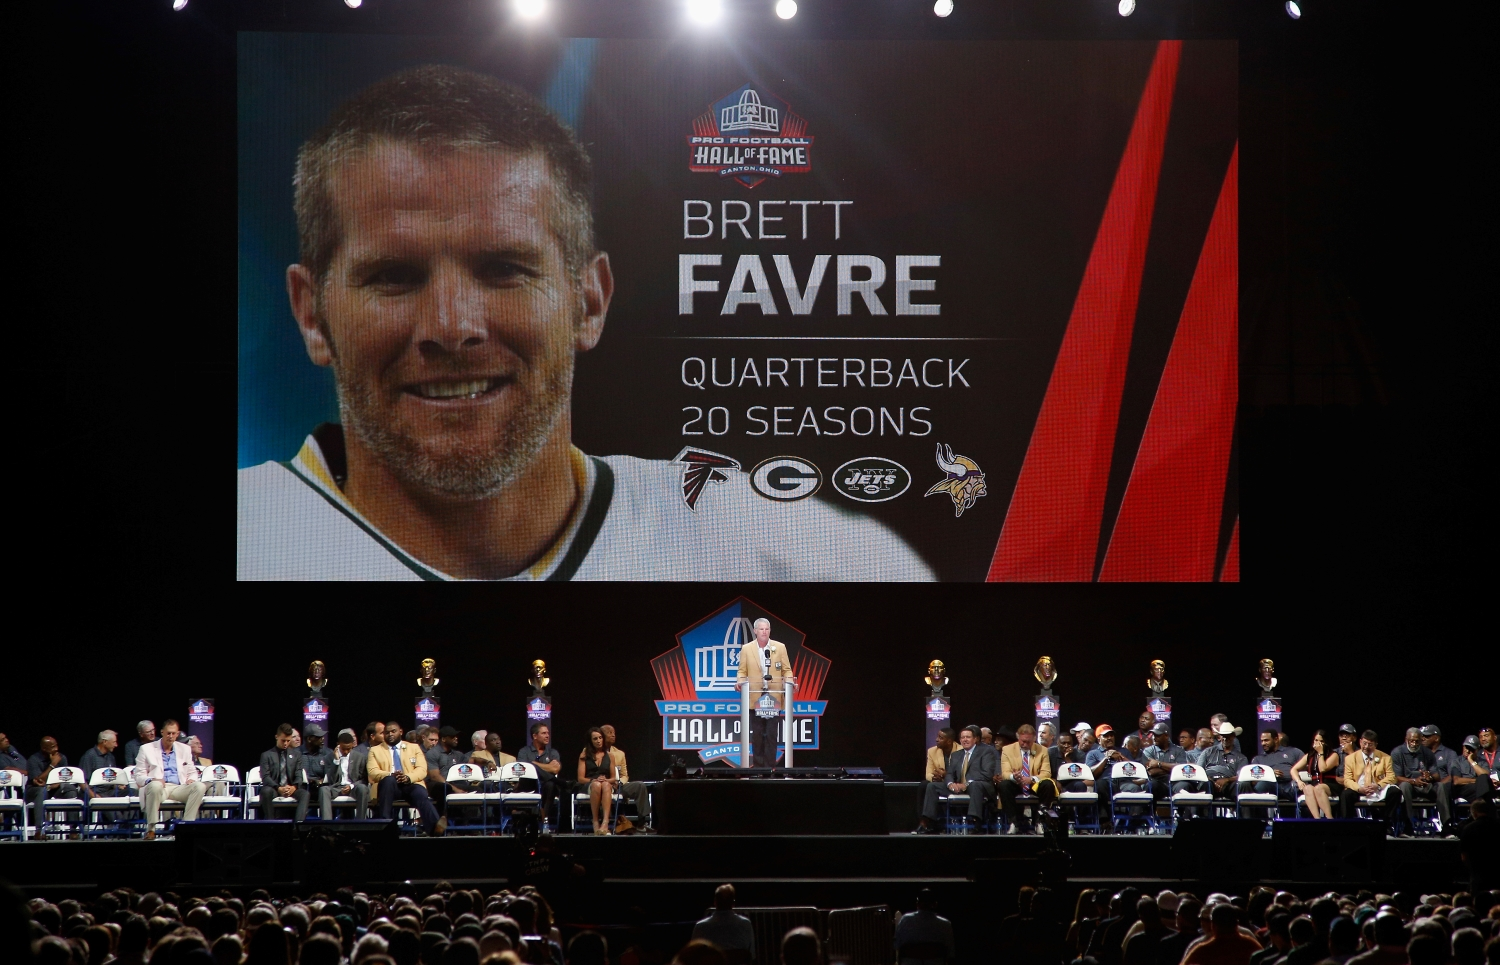 Green Bay Packers legend Brett Favre speaks during his Pro Football Hall of Fame induction ceremony on Aug. 6, 2016.